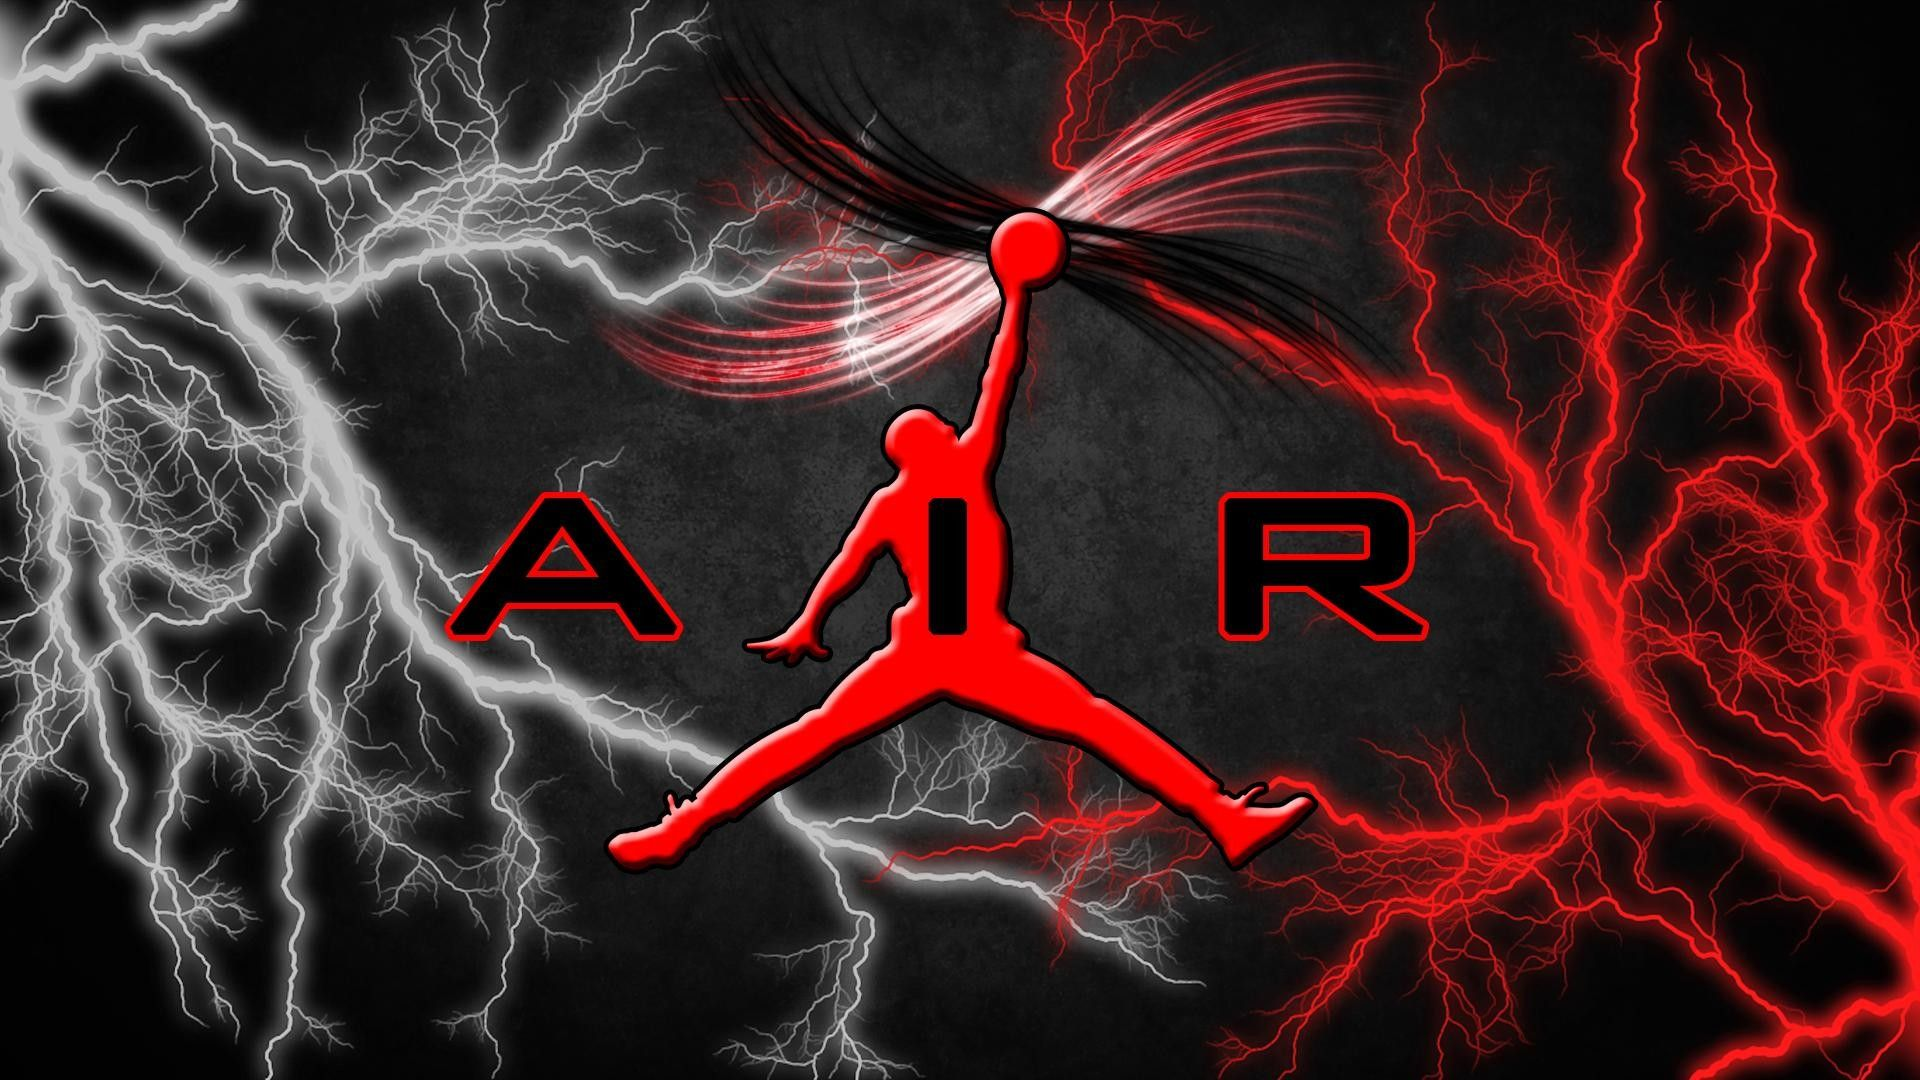 Best Jordan Logo iPhone Wallpapers is a fantastic HD